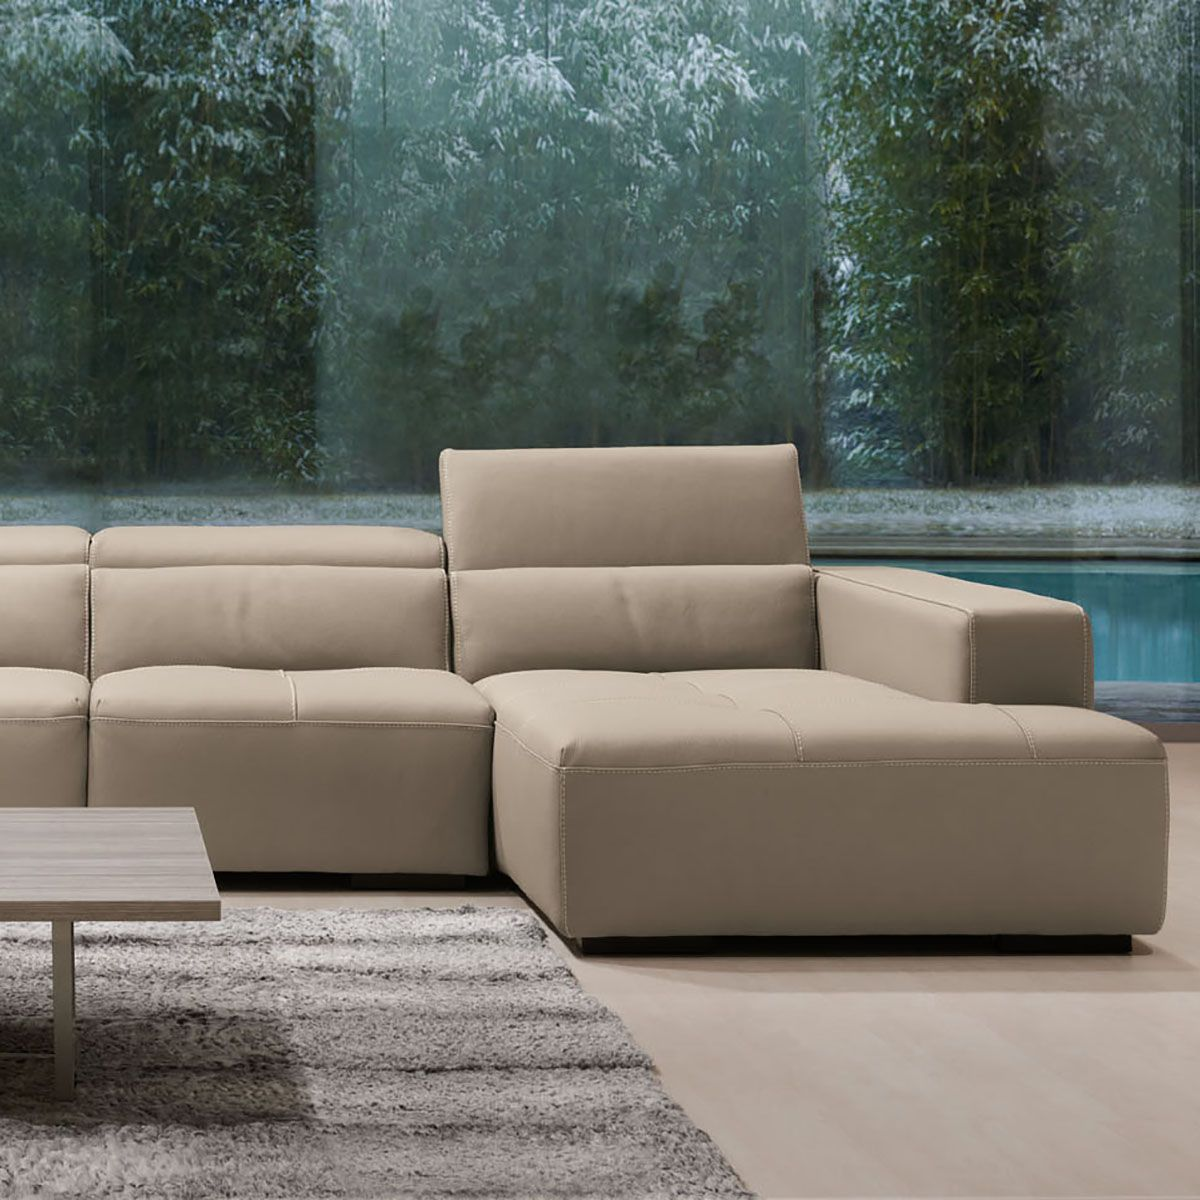 leather sofa manufacturers italy sectional sales near me tiffany design depot furniture miami showroom móveis